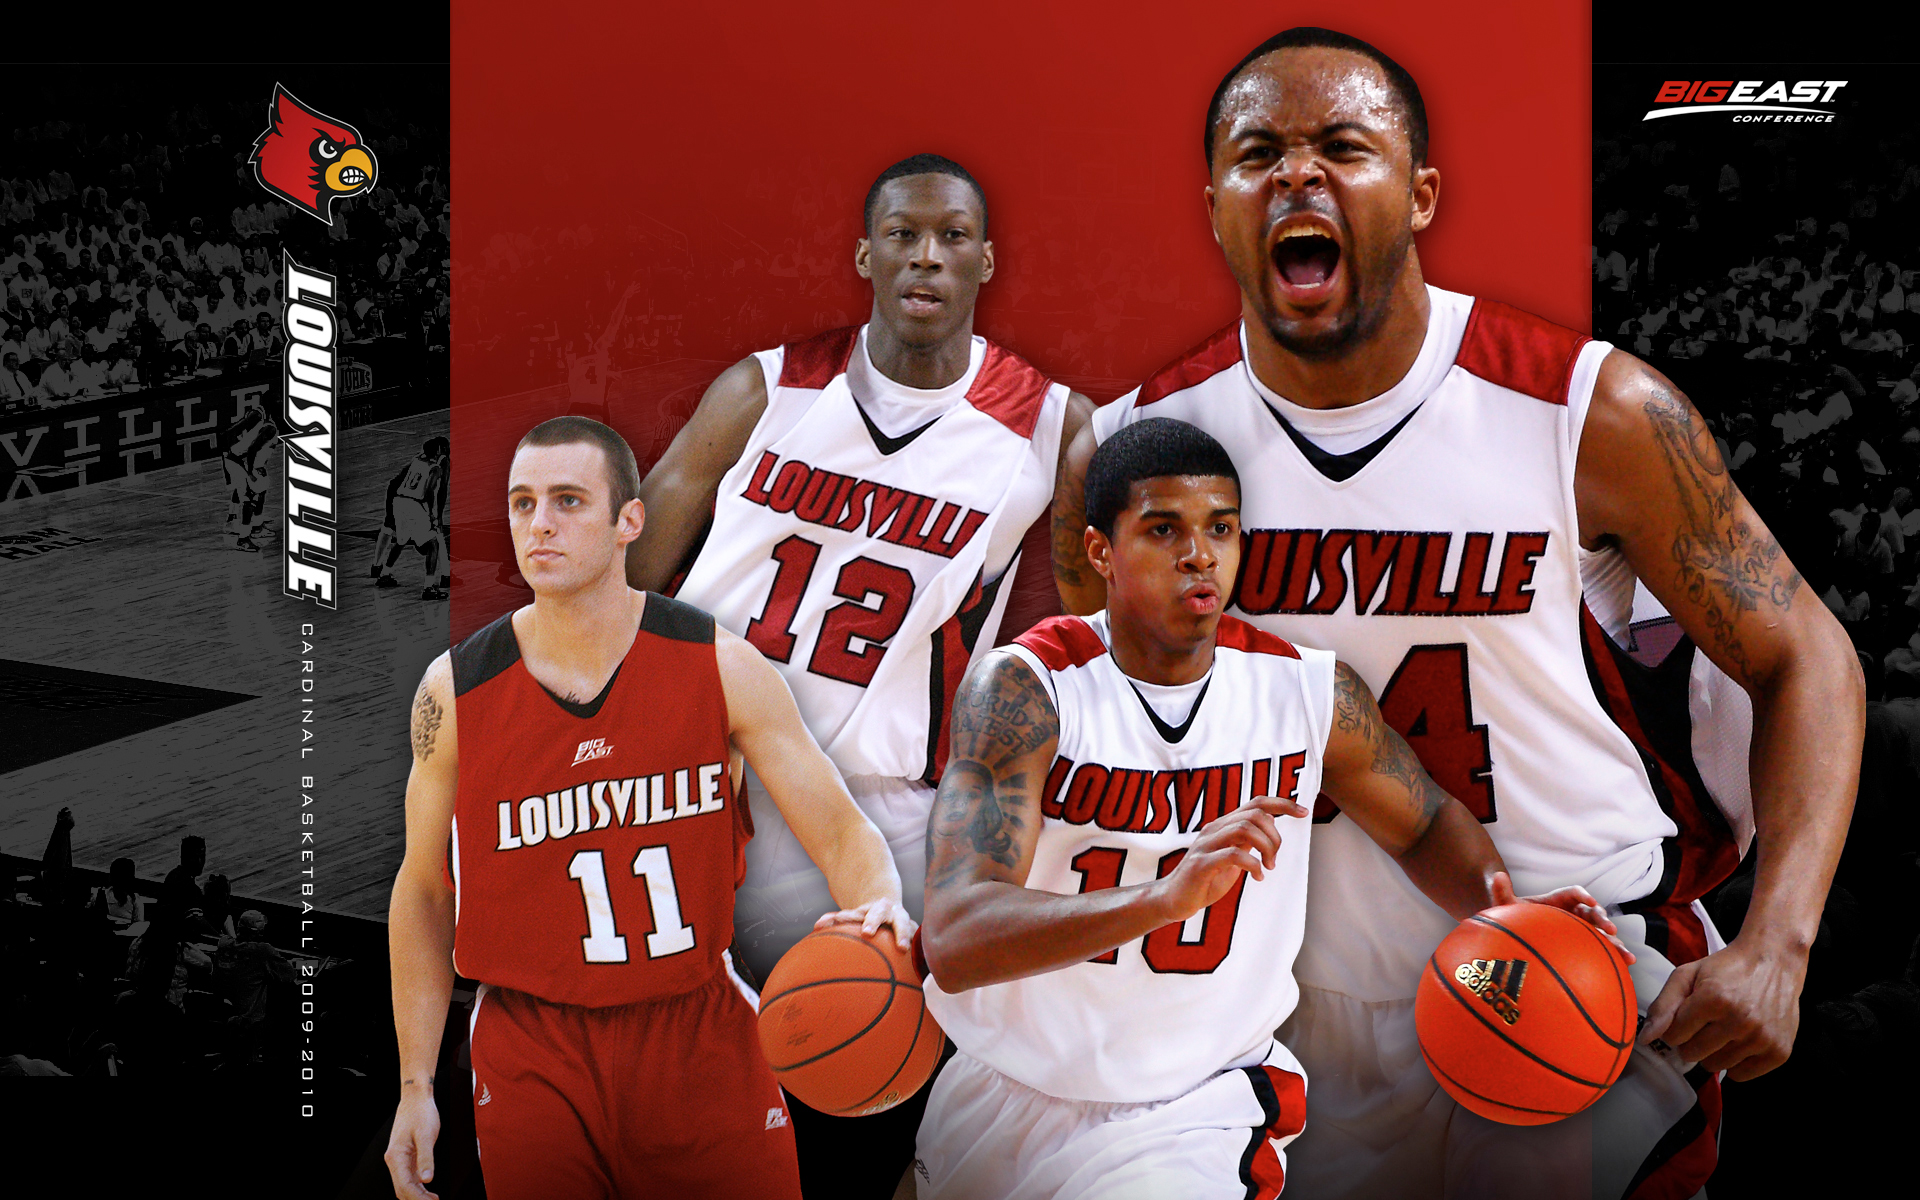 College Basketball Wallpaper: U Of L Basketball Wallpaper